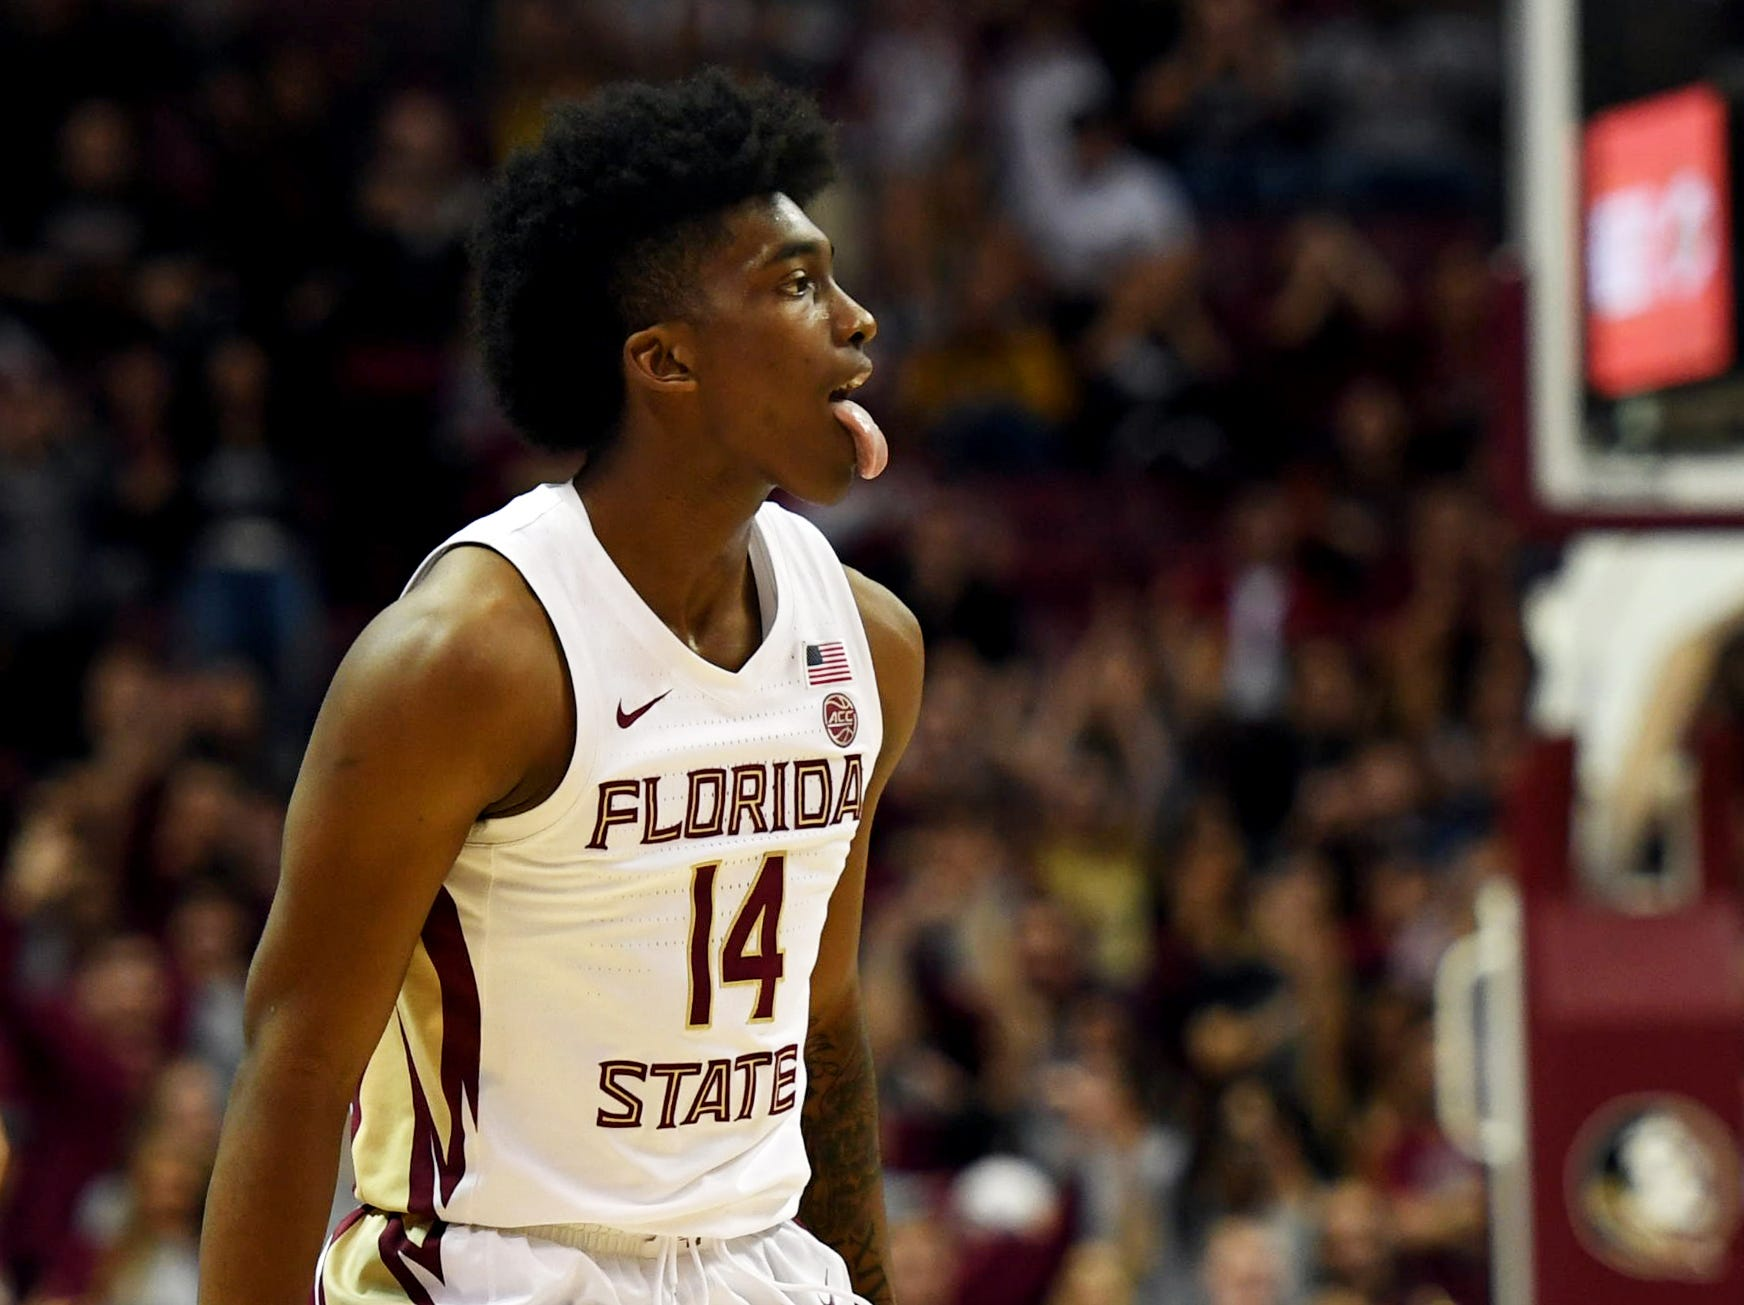 Feb 9, 2019; Tallahassee, FL, USA; Florida State Seminoles guard Terance Mann (14) reacts after hitting a three point basket during the second half against the Louisville Cardinals at Donald L. Tucker Center. Mandatory Credit: Melina Myers-USA TODAY Sports